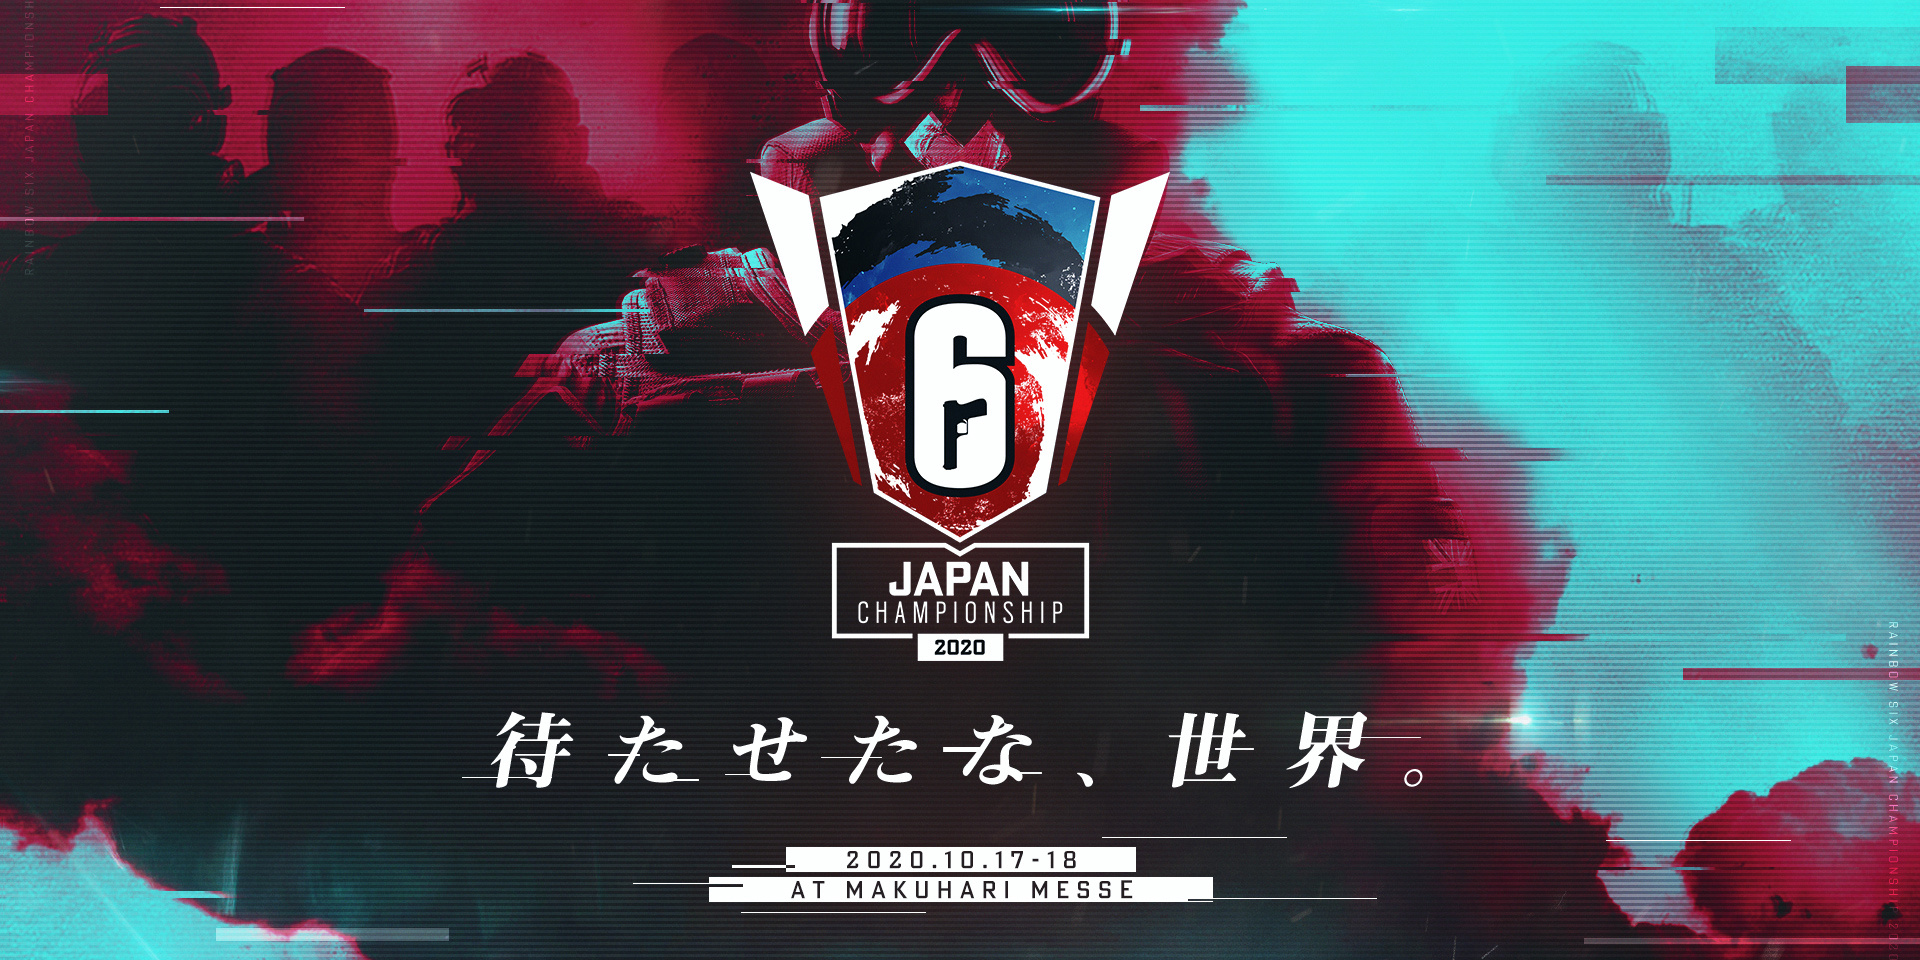 Japan Championship 2020 Announced with US$140,000 Prize Pool, APAC North Relegations Spot